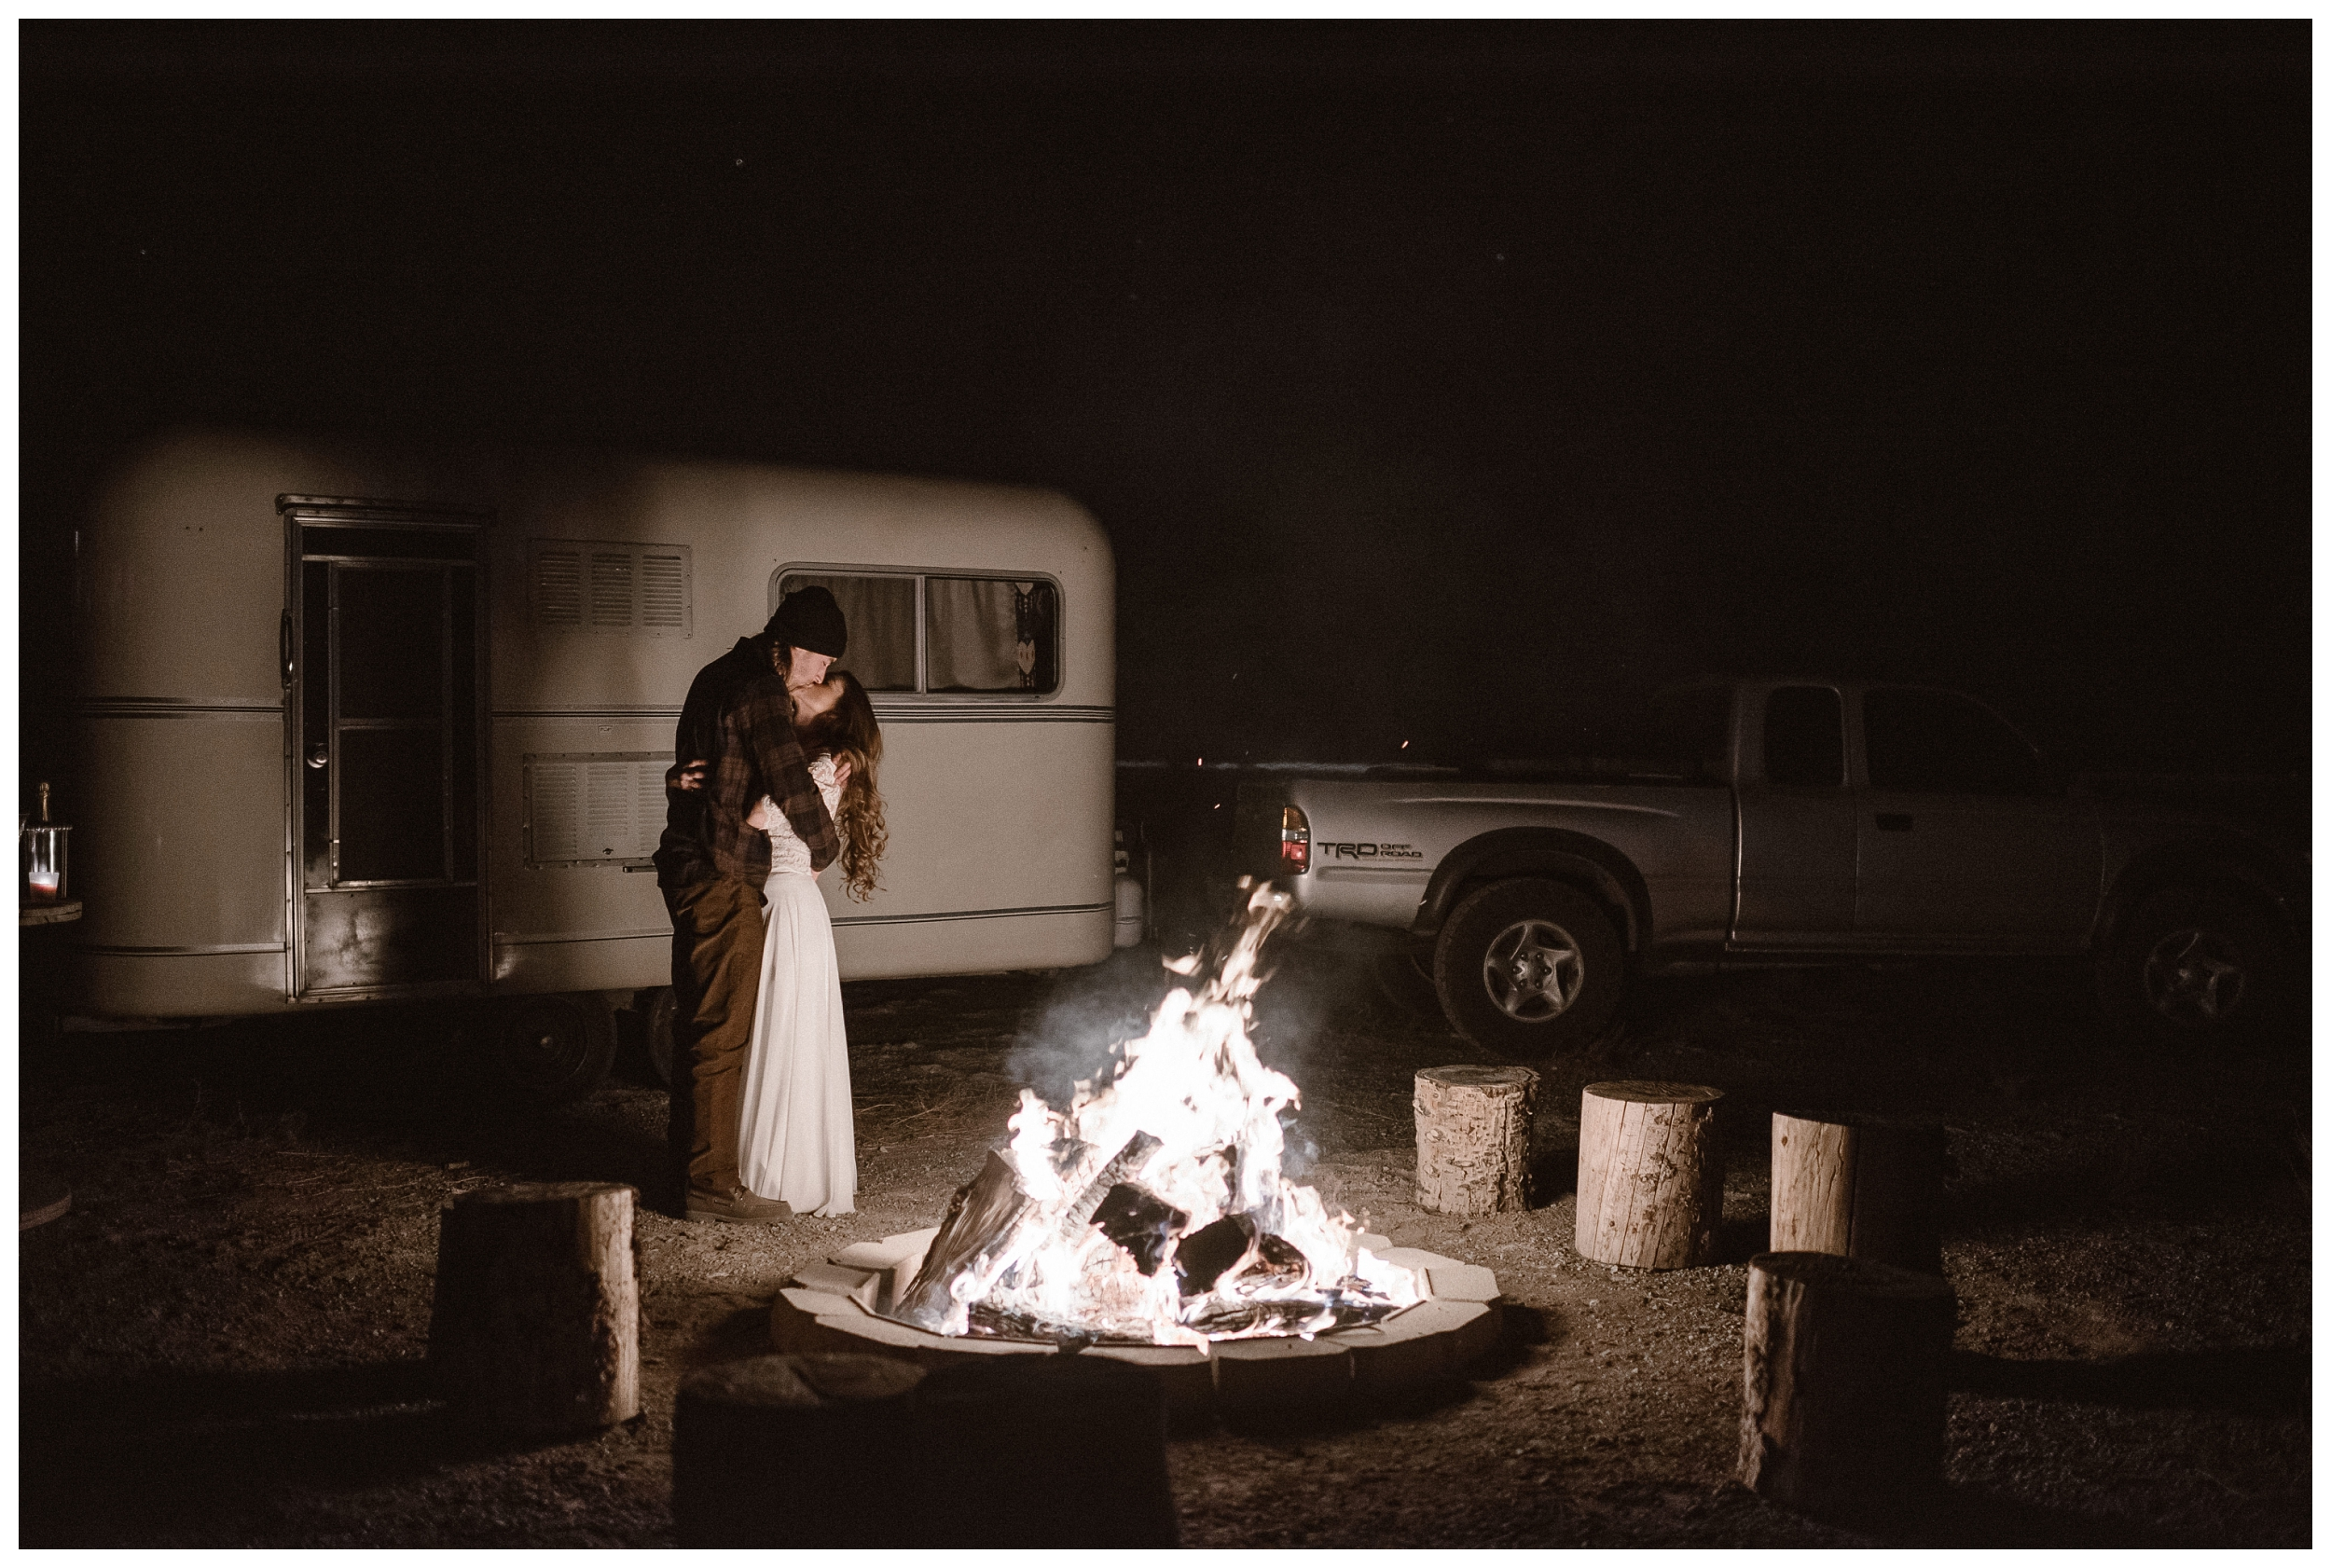 Newlywed couple has their first dance outside their refurbished trailer after their intimate outdoor elopement in Southern Colorado. Photo by Maddie Mae Photo, Adventures Instead.